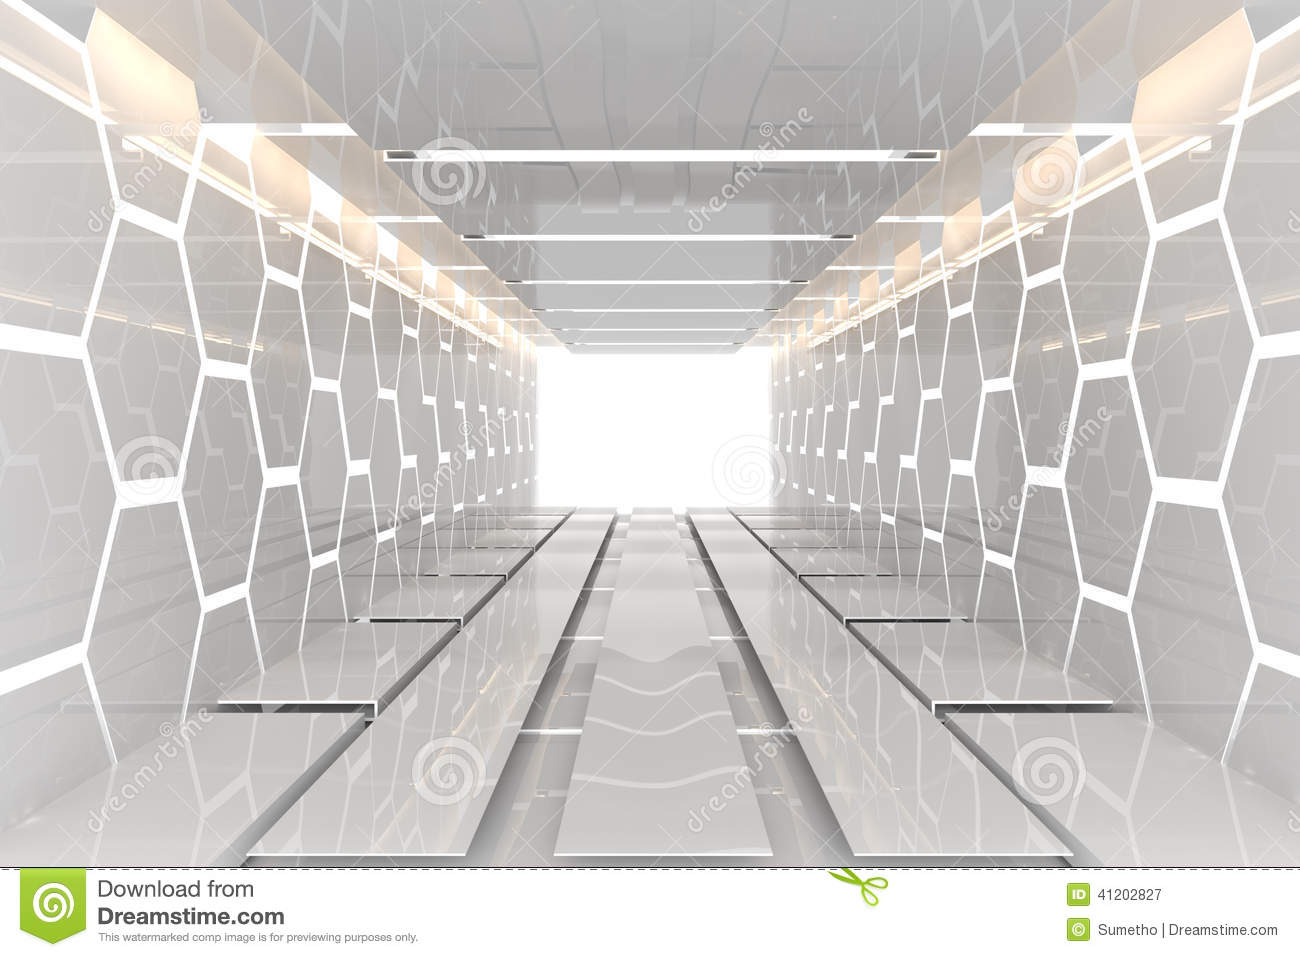 Wallpaper 3d Abstract White Futuristic White Hexagon Room Stock Illustration Image